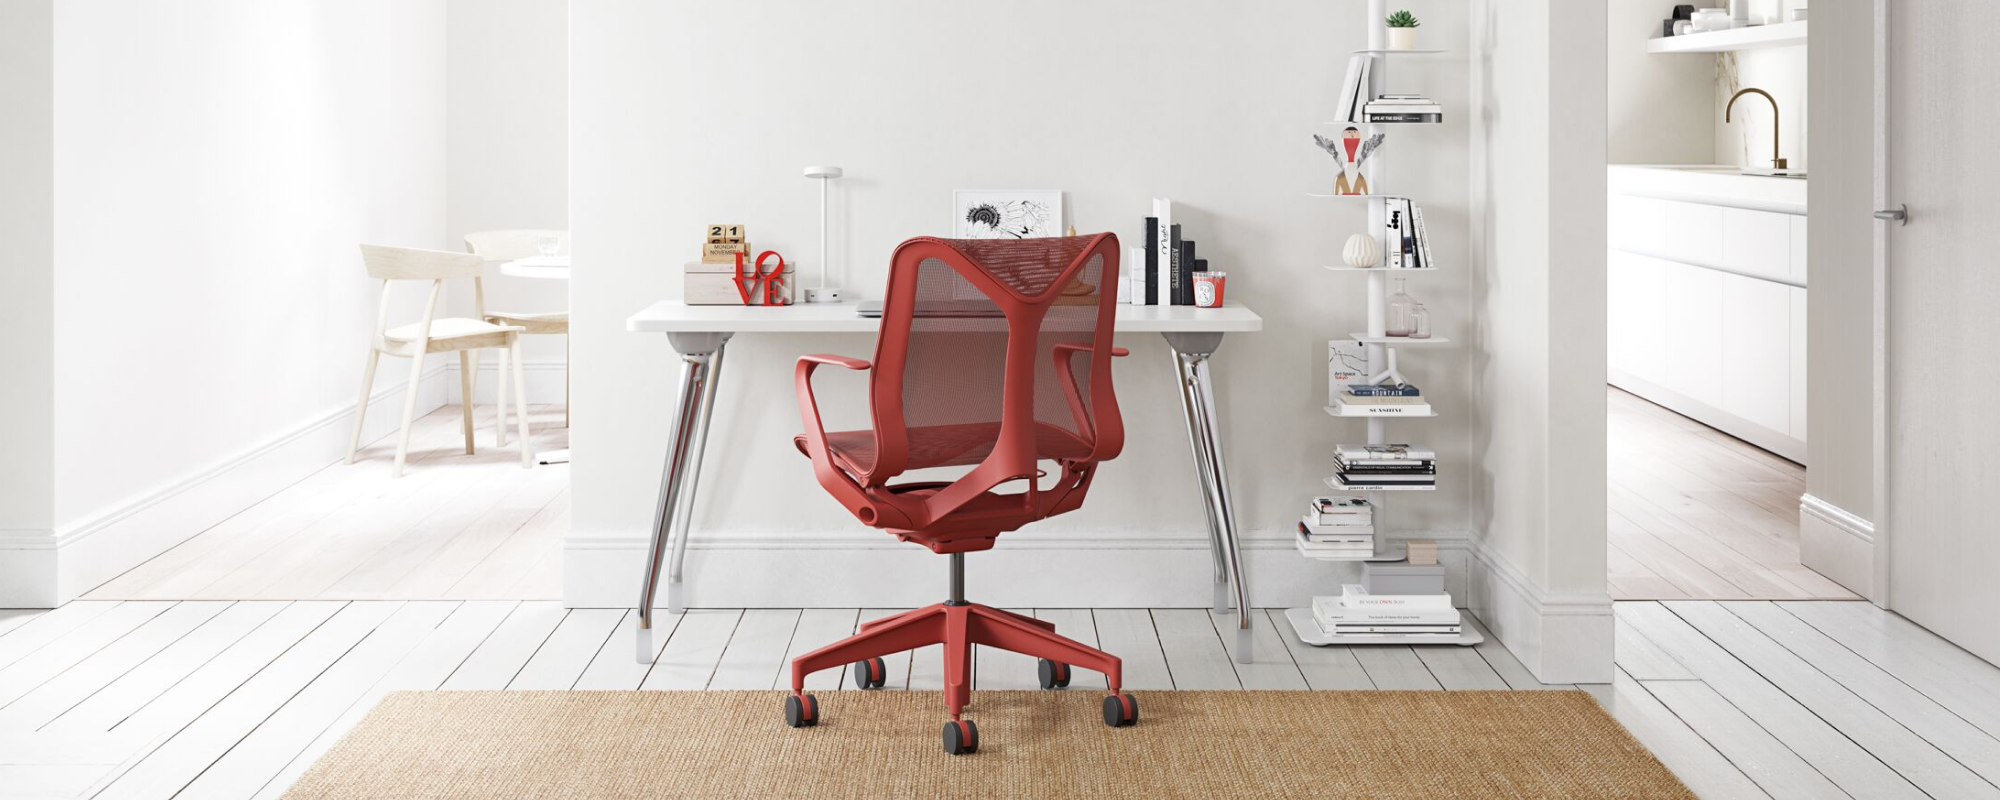 A light home office environment featuring a Canyon Red Low Back Cosm Chair against a white AbakEnvironments Desk with a white Lolly Lamp